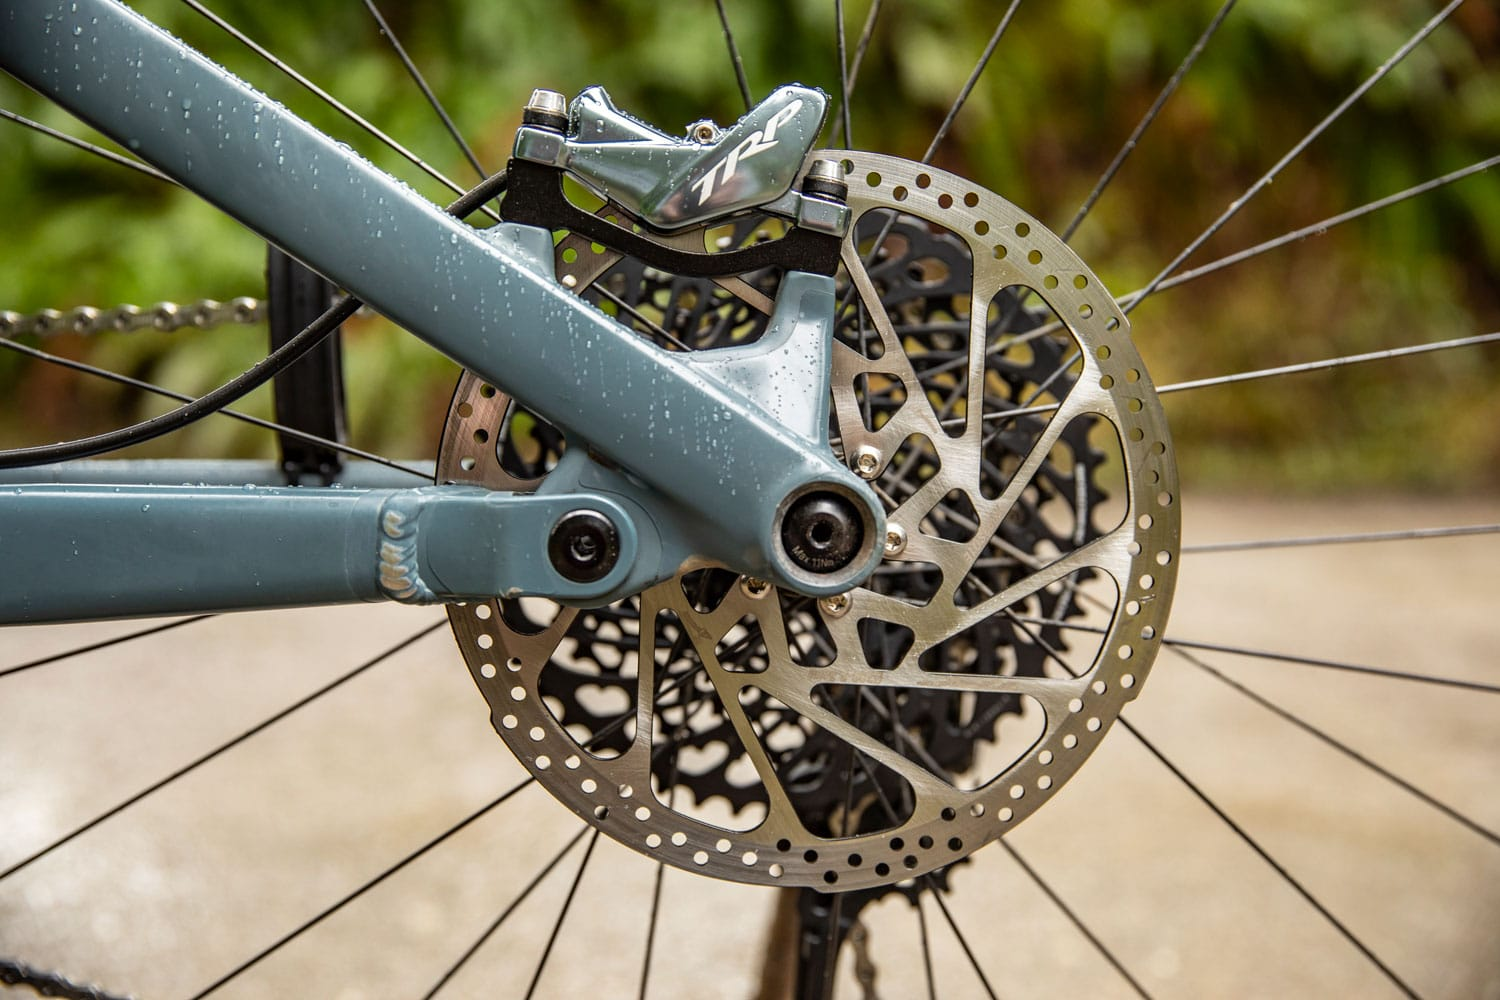 Dissected: <br>TRP DHR Evo Brakes Explained